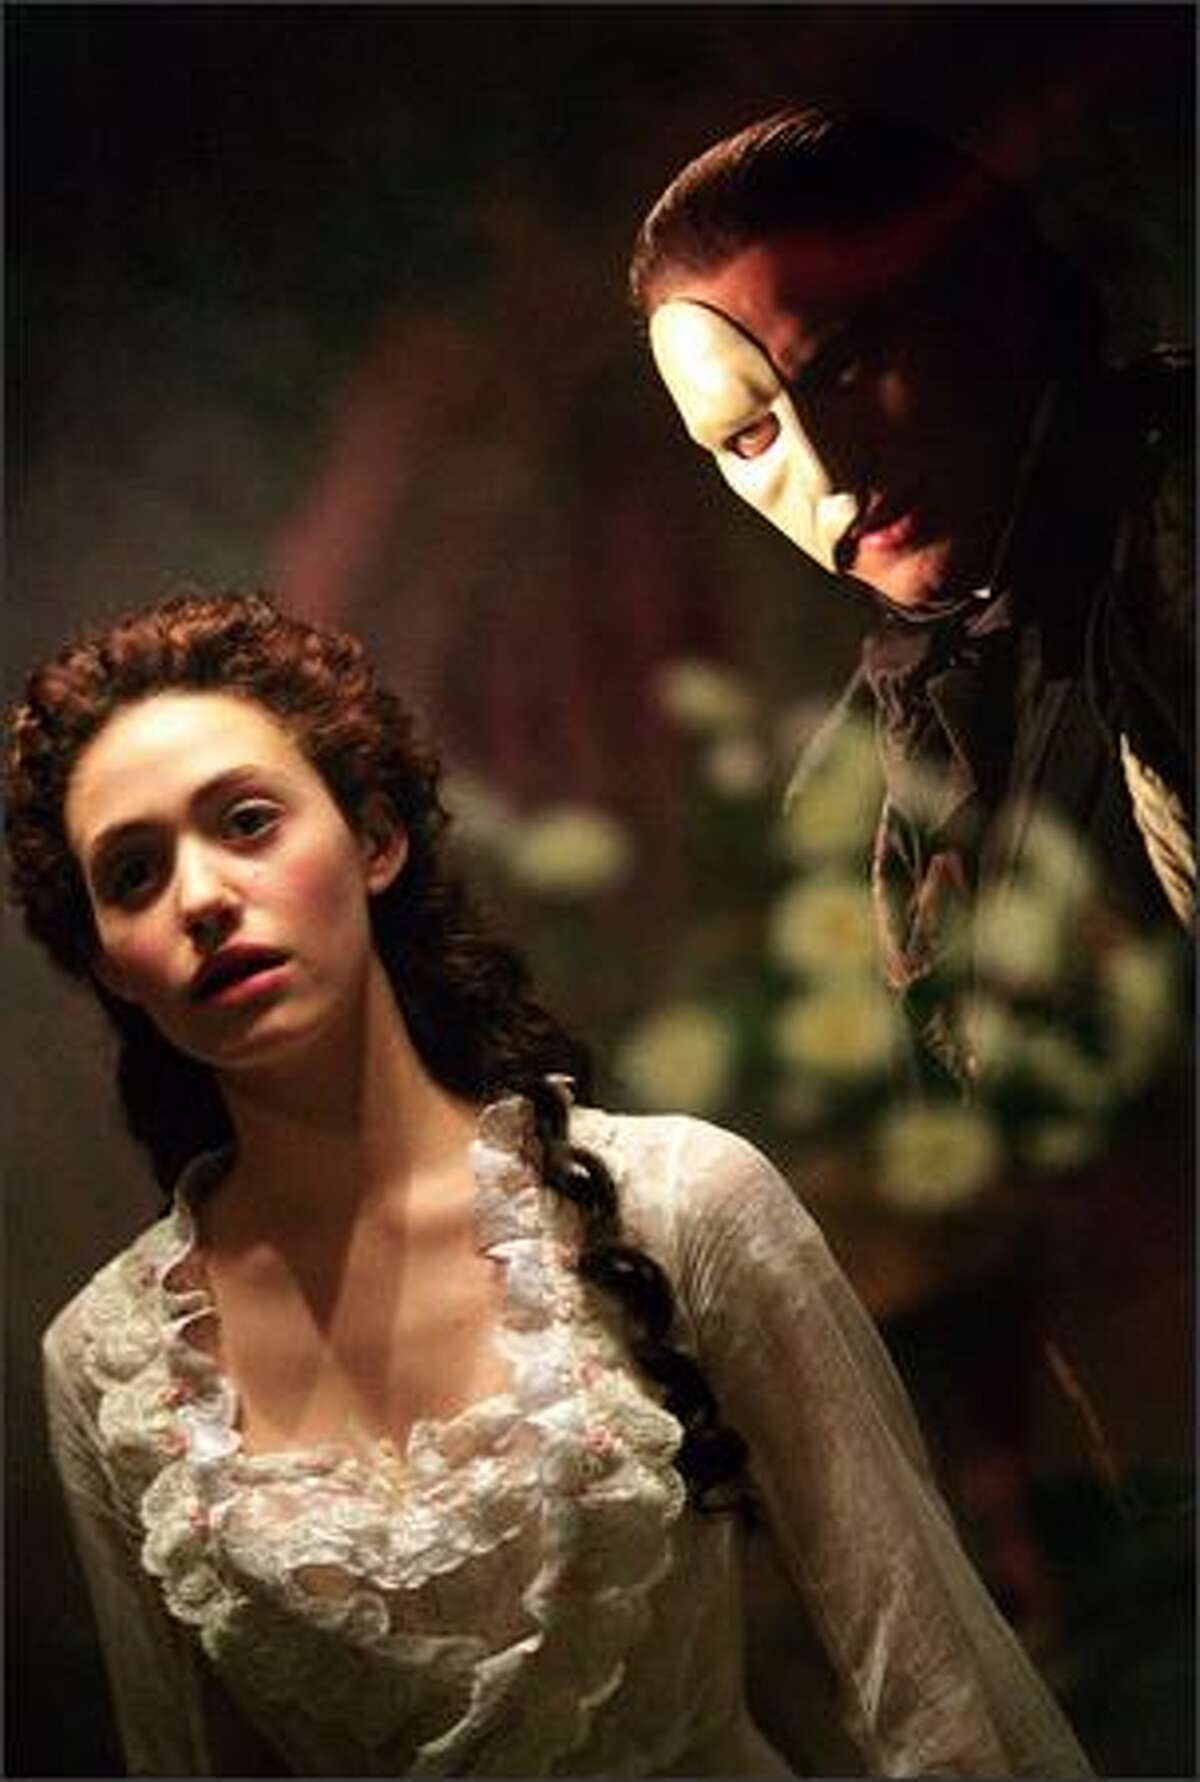 Christine (Emmy Rossum) and her mysterious